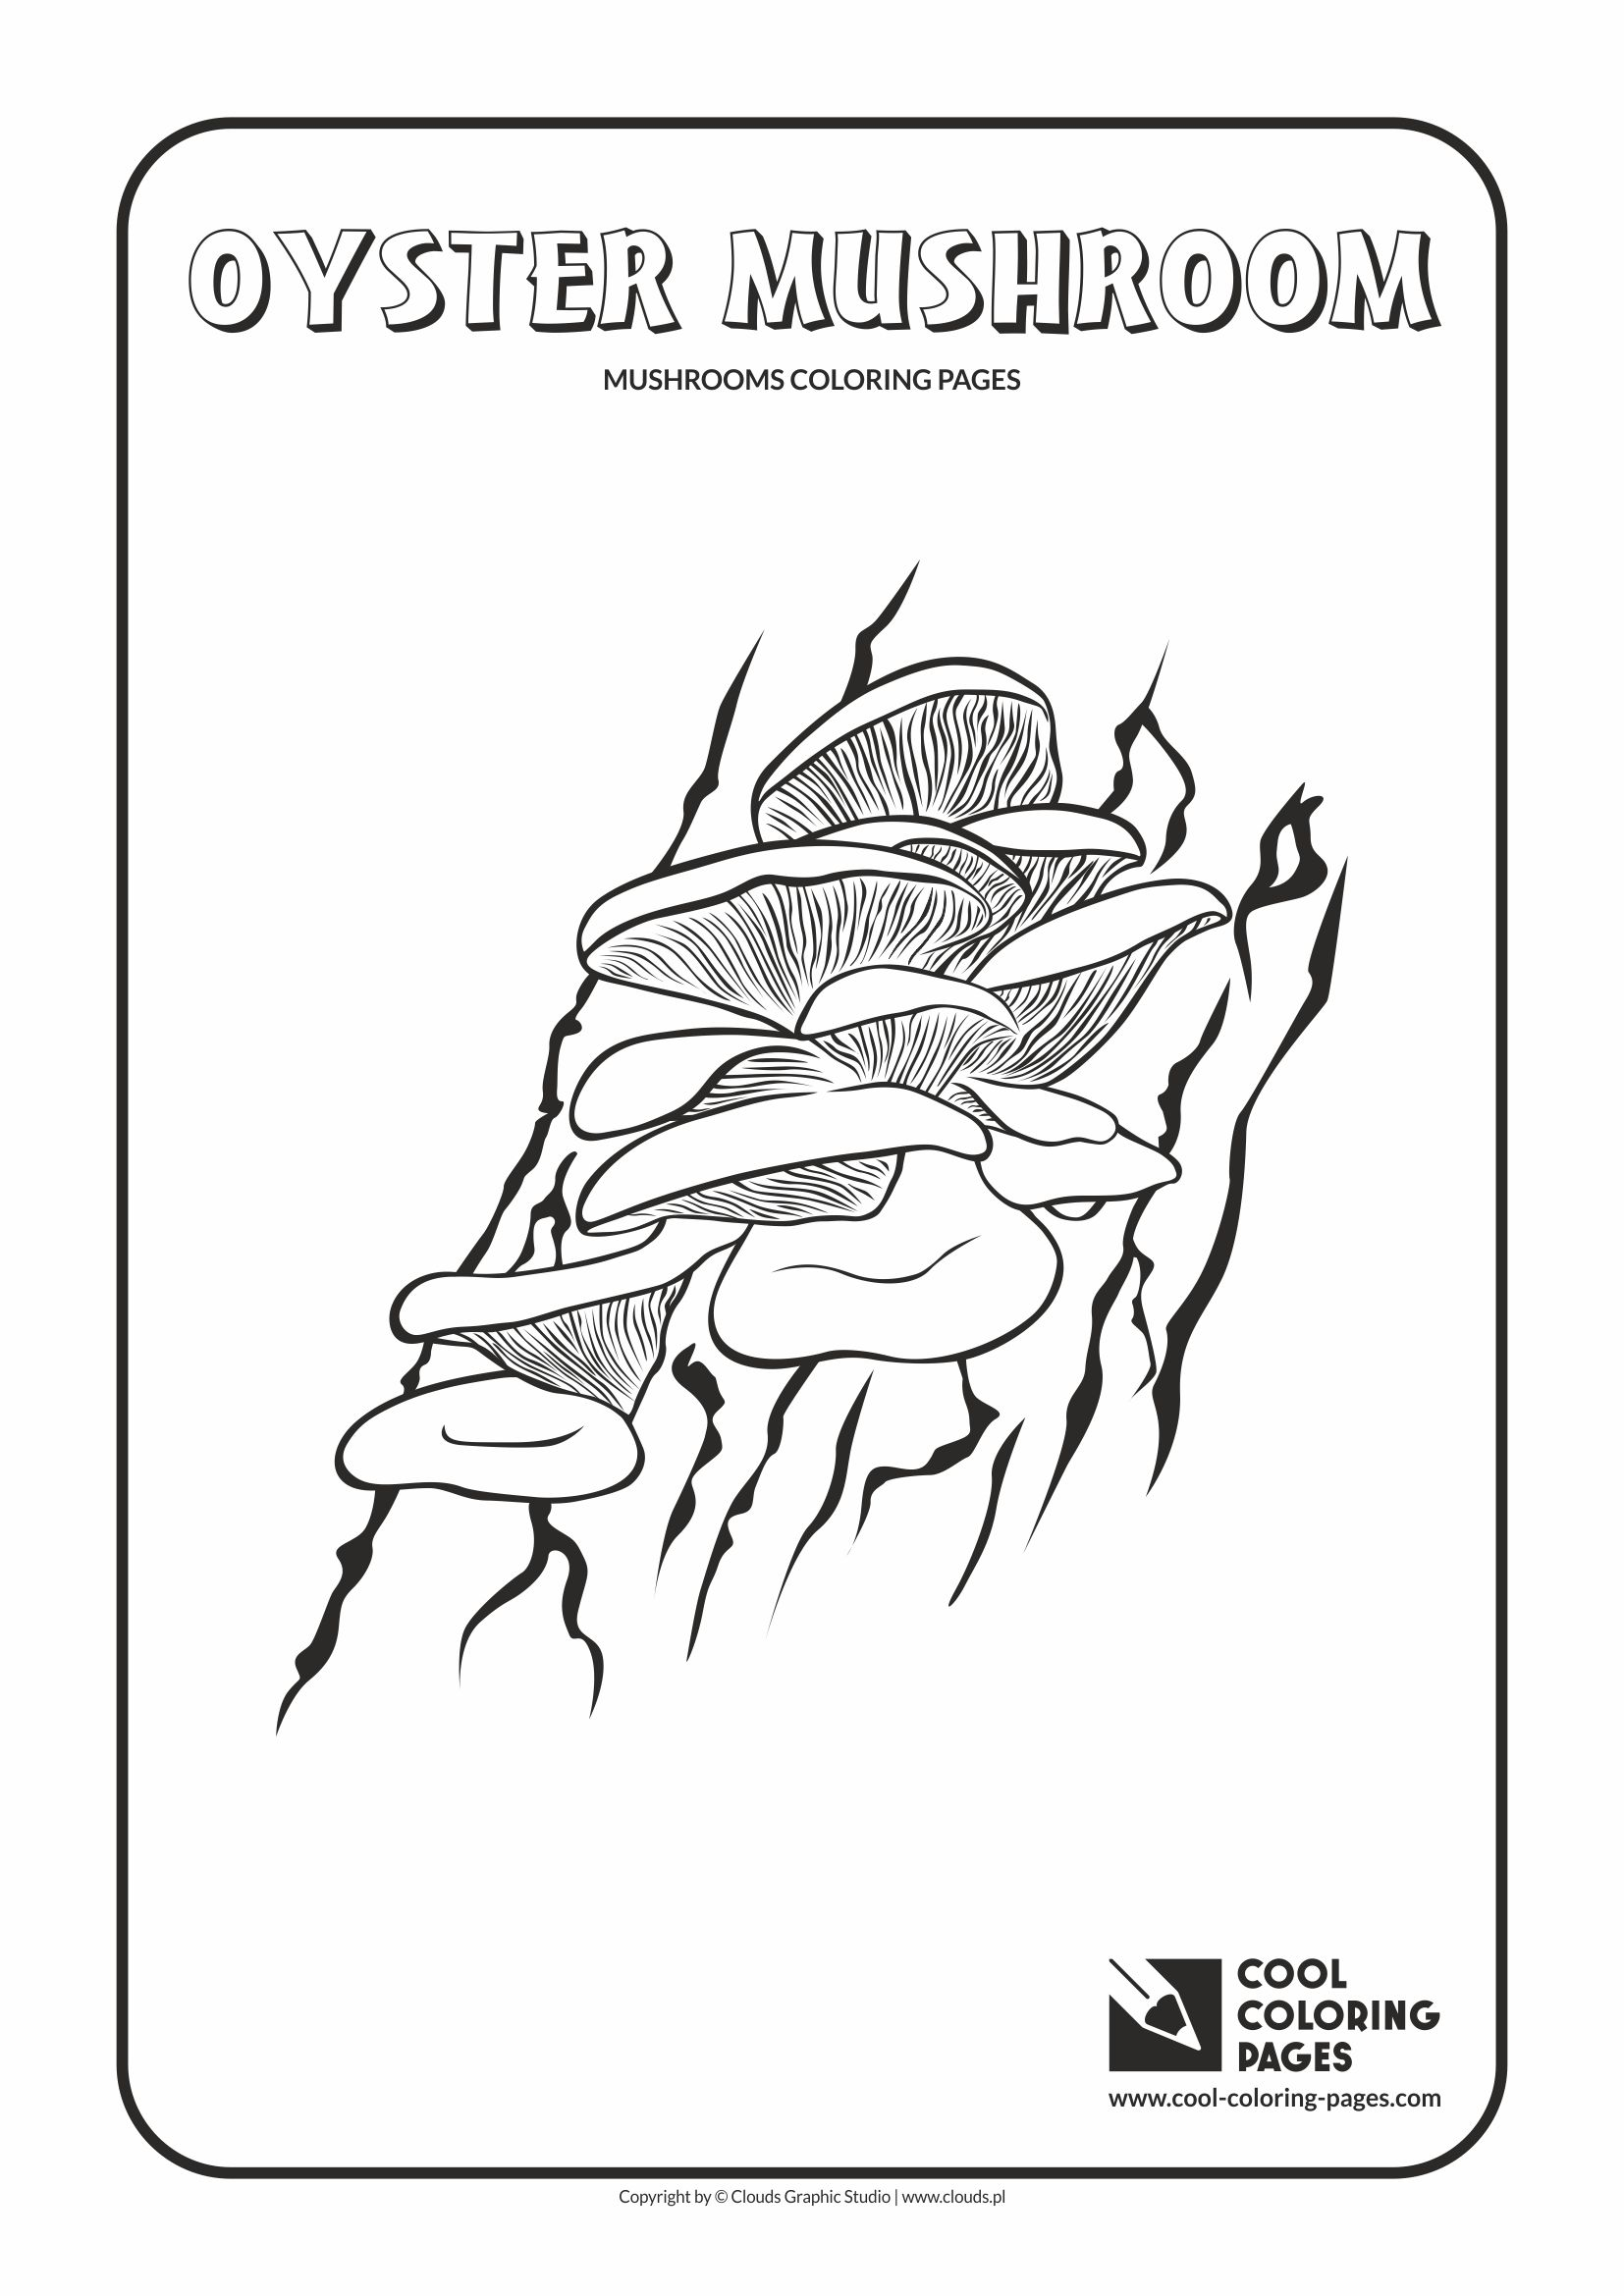 Cool Coloring Pages - Mushrooms / Oyster mushroom / Coloring page with oyster mushroom